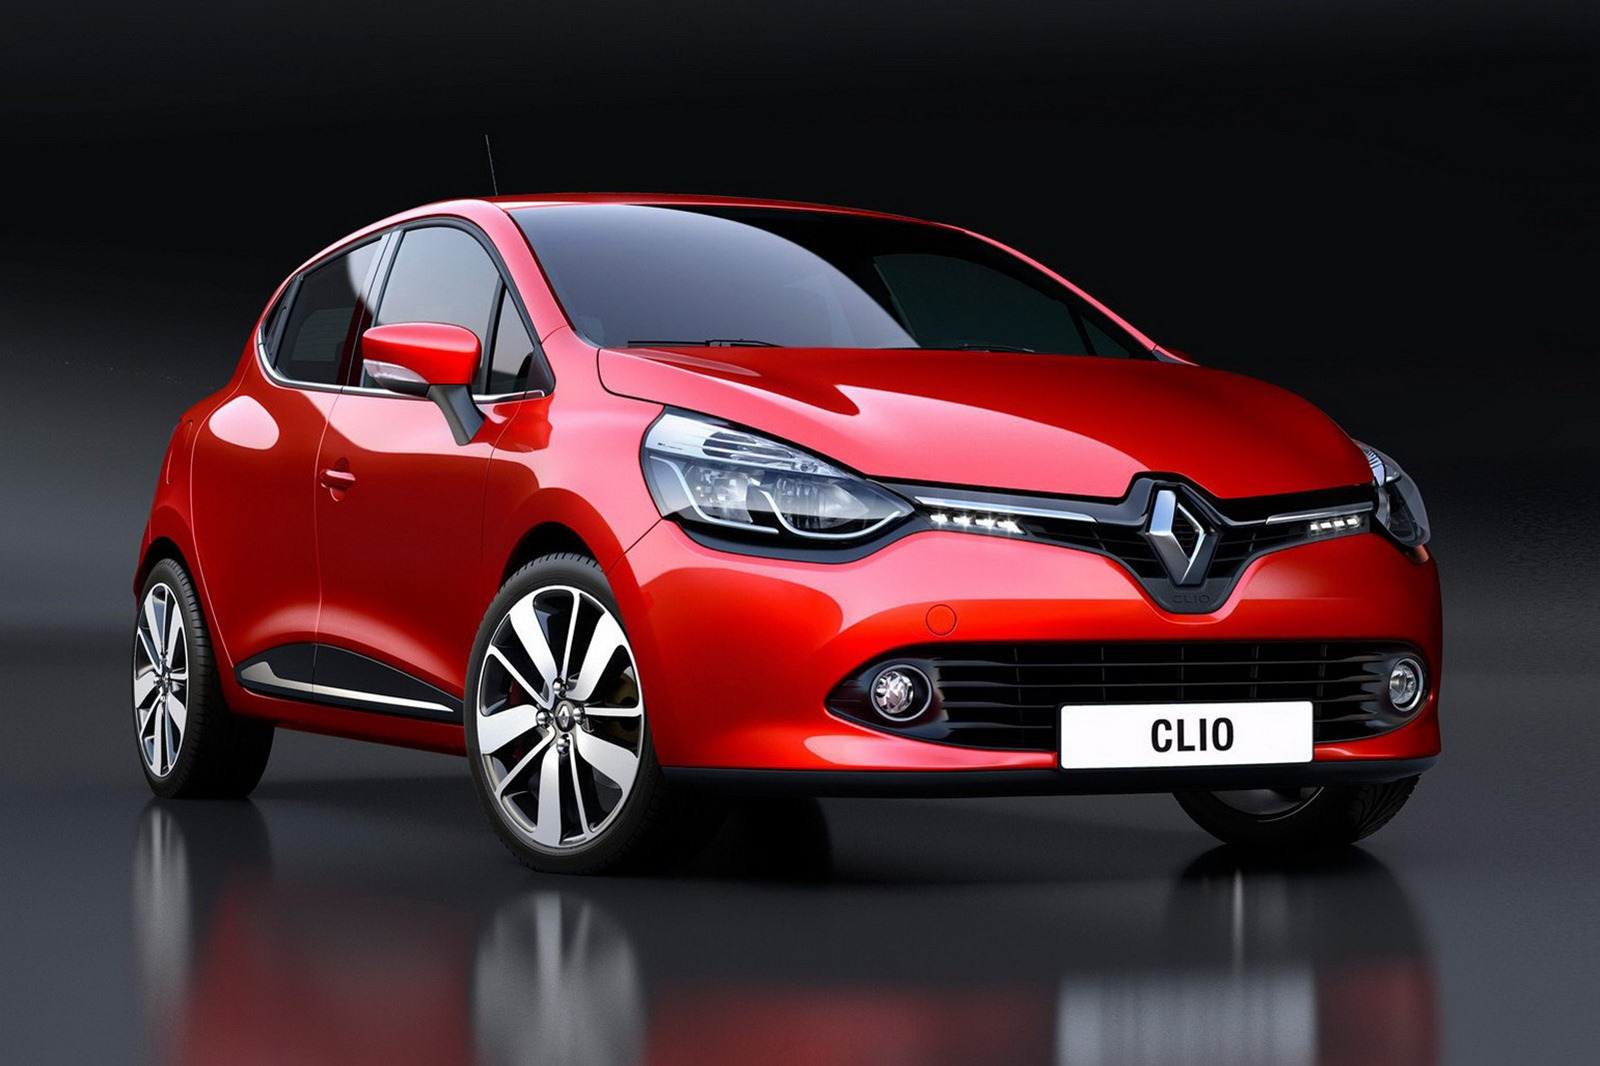 2013 Renault Clio 4 Expression a whole new statement | My Brand Group